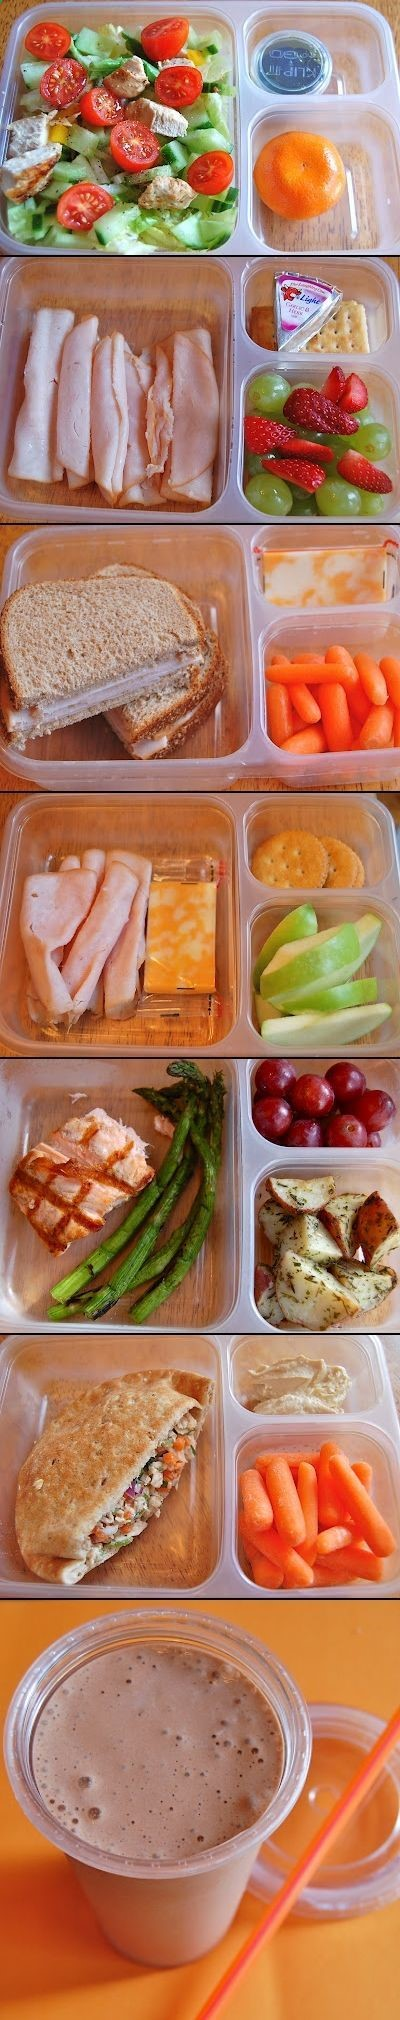 Ideas For Packing A Delicious, Healthy Lunch. The link is spam. Just look at the picture.